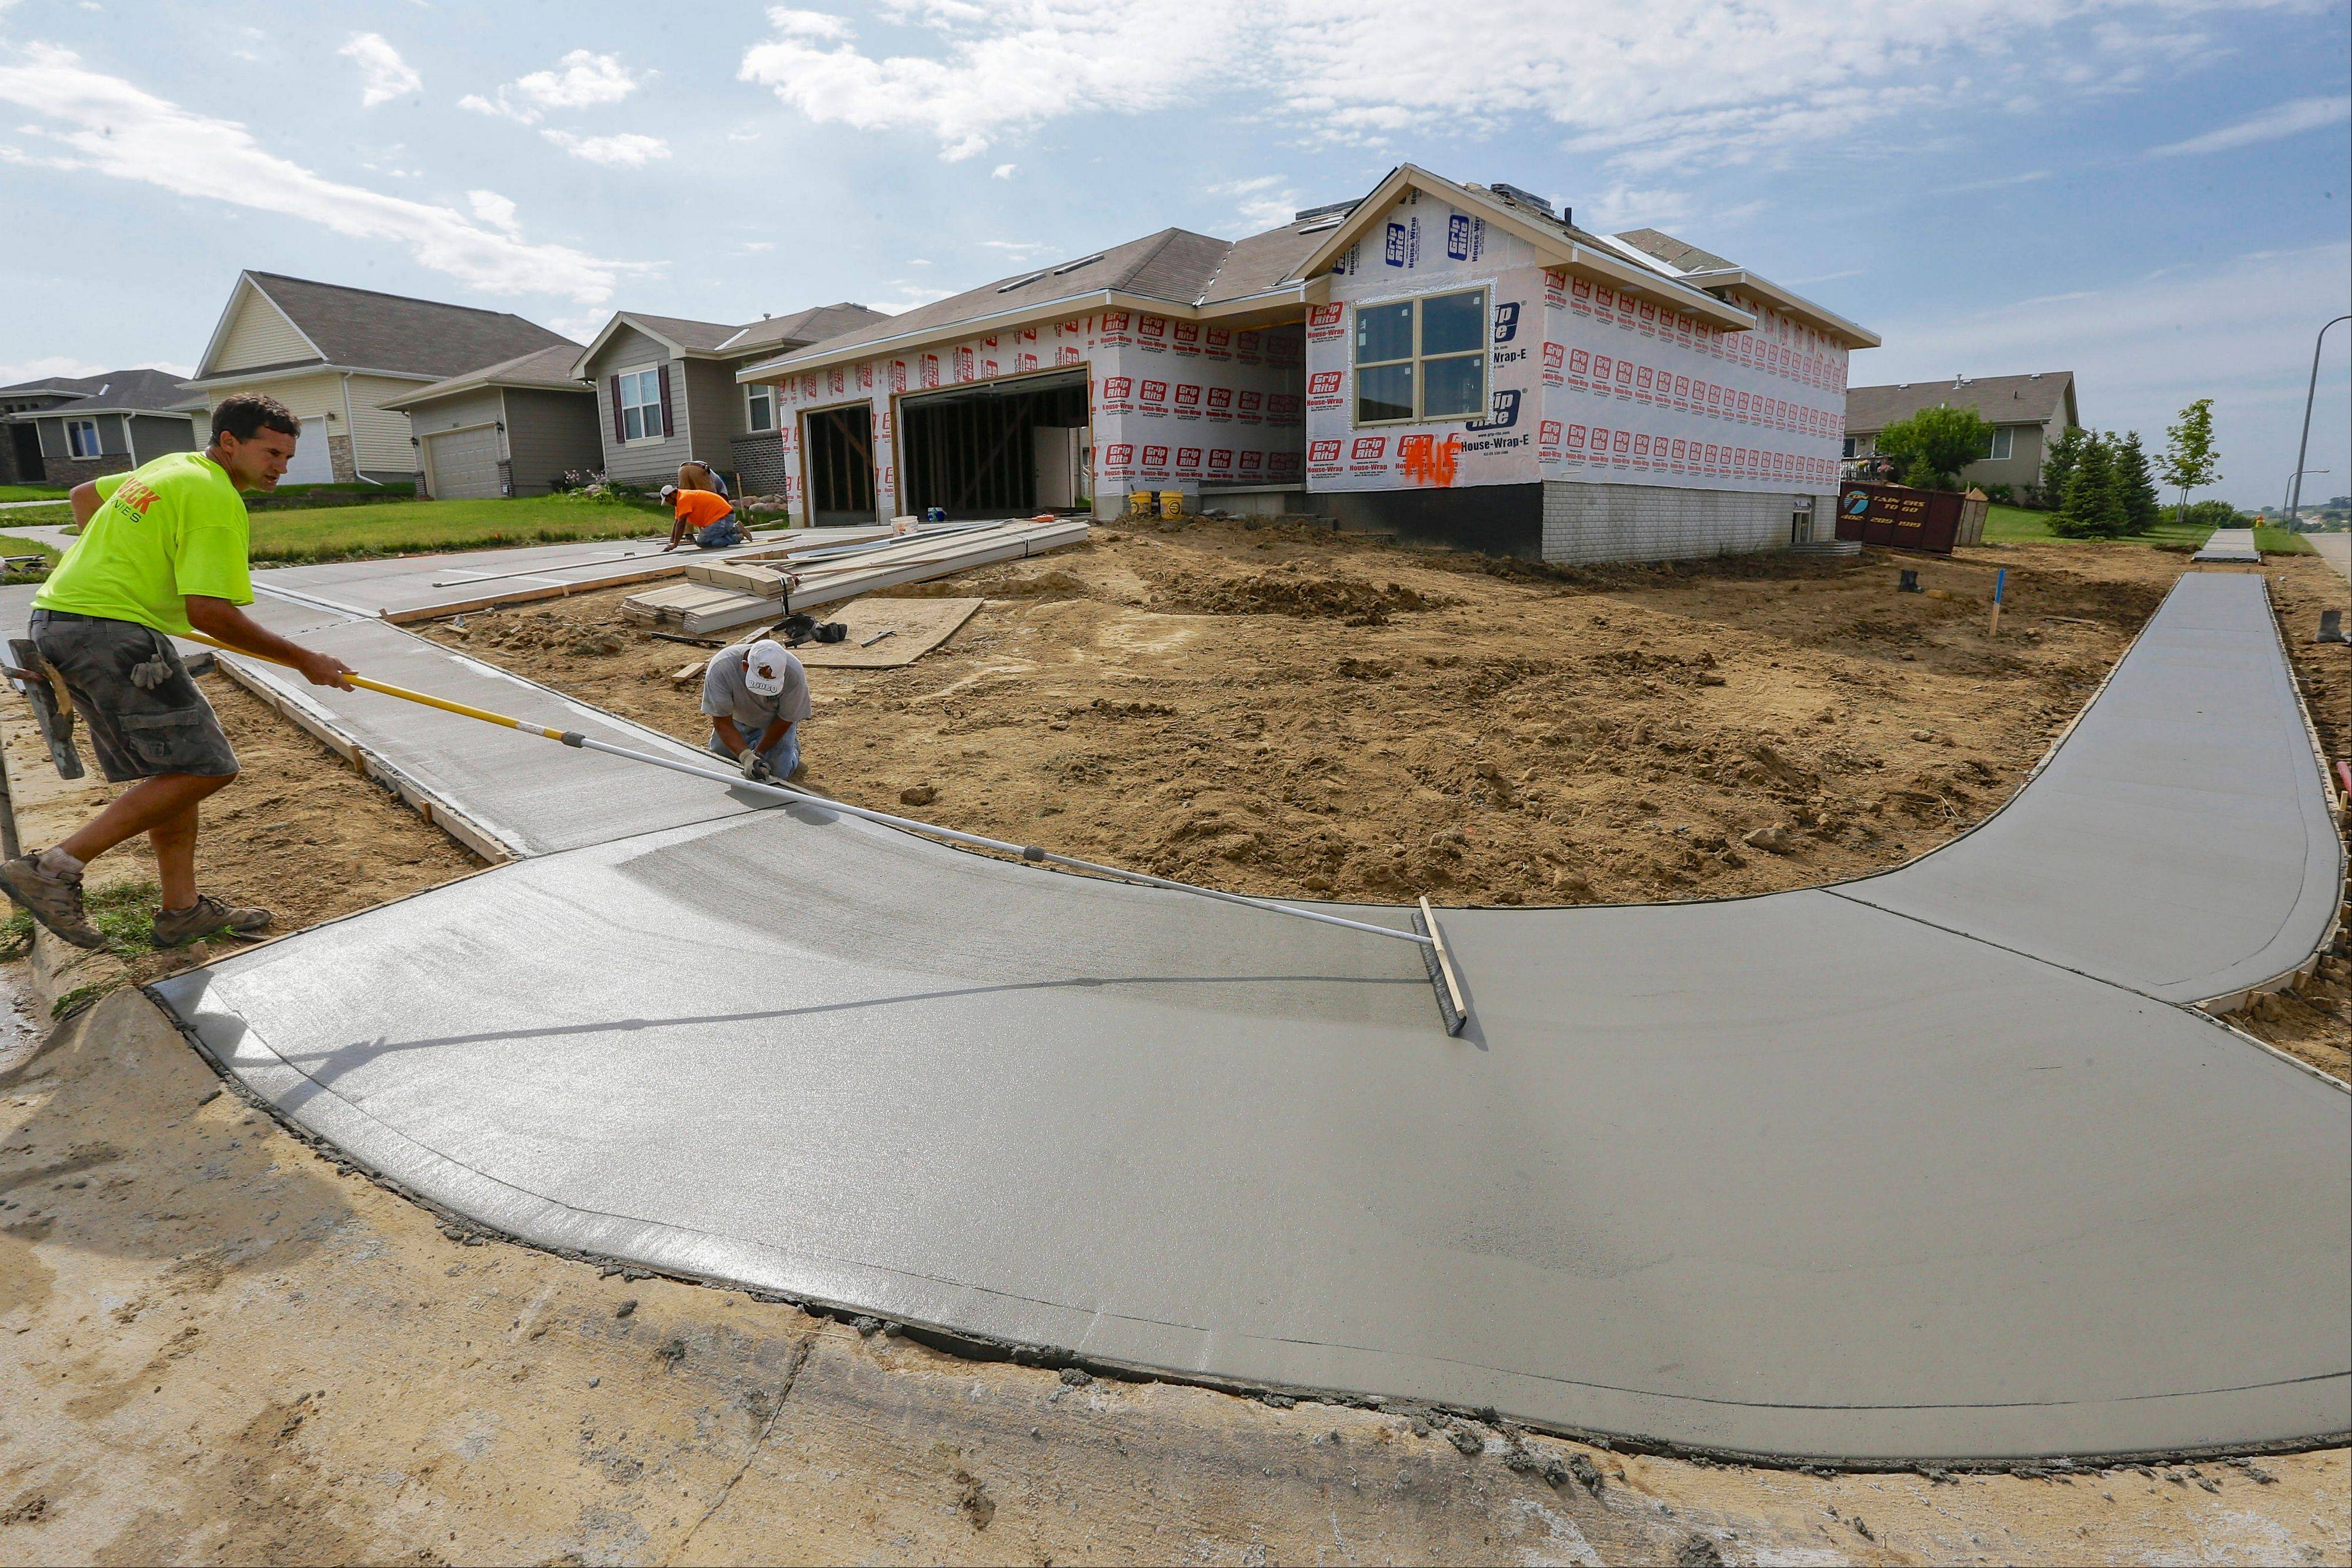 A new home under construction in Omaha, Neb. U.S. builders started work in August on the most single-family homes in six months and requested permits to build even more in future months.